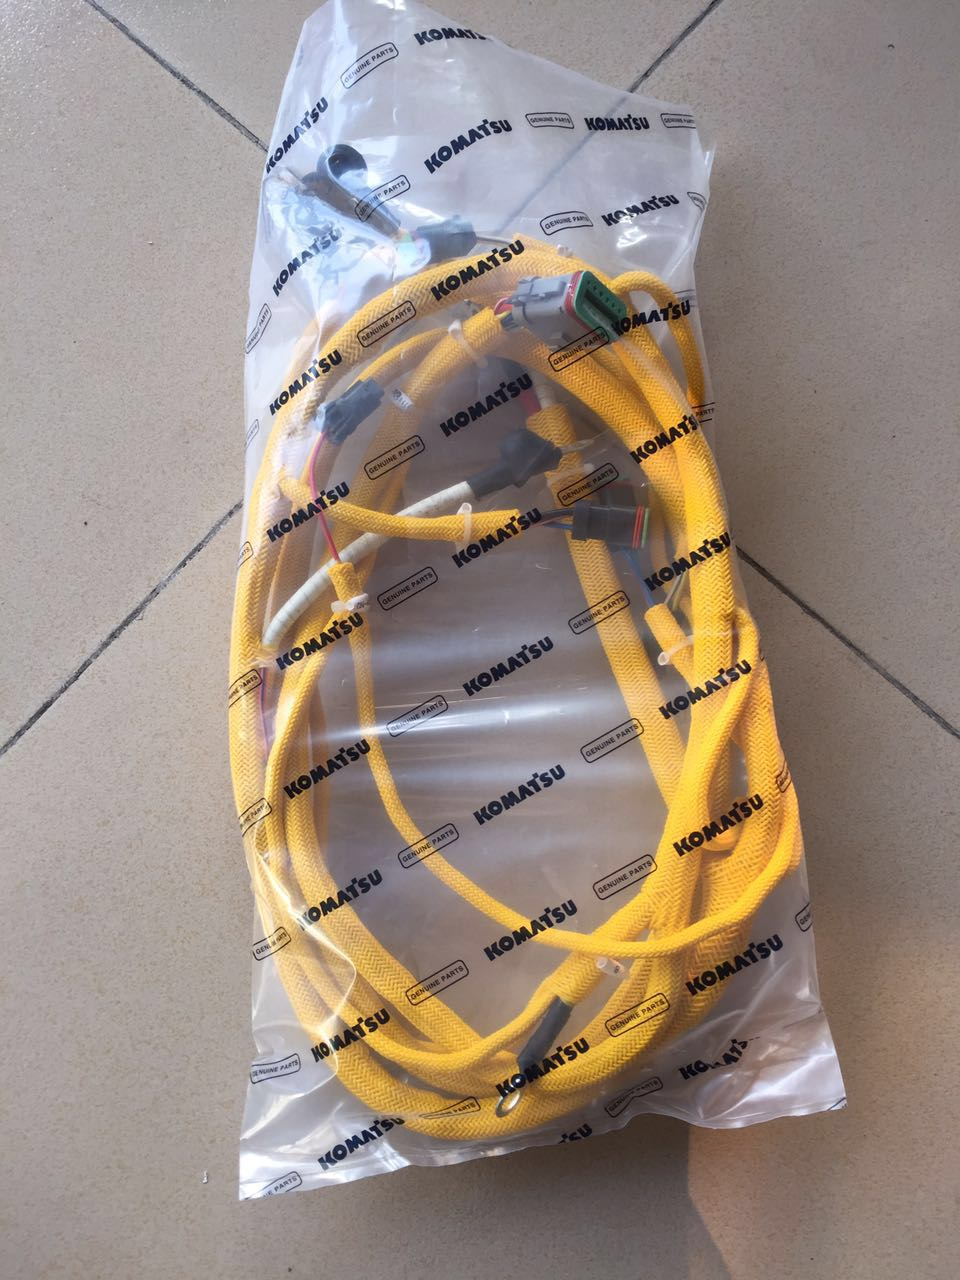 Wiring Harness 6743 81 8310 For Pc300 7 Excavator Komatsu 7pc360 7for Engine Saa6d114e